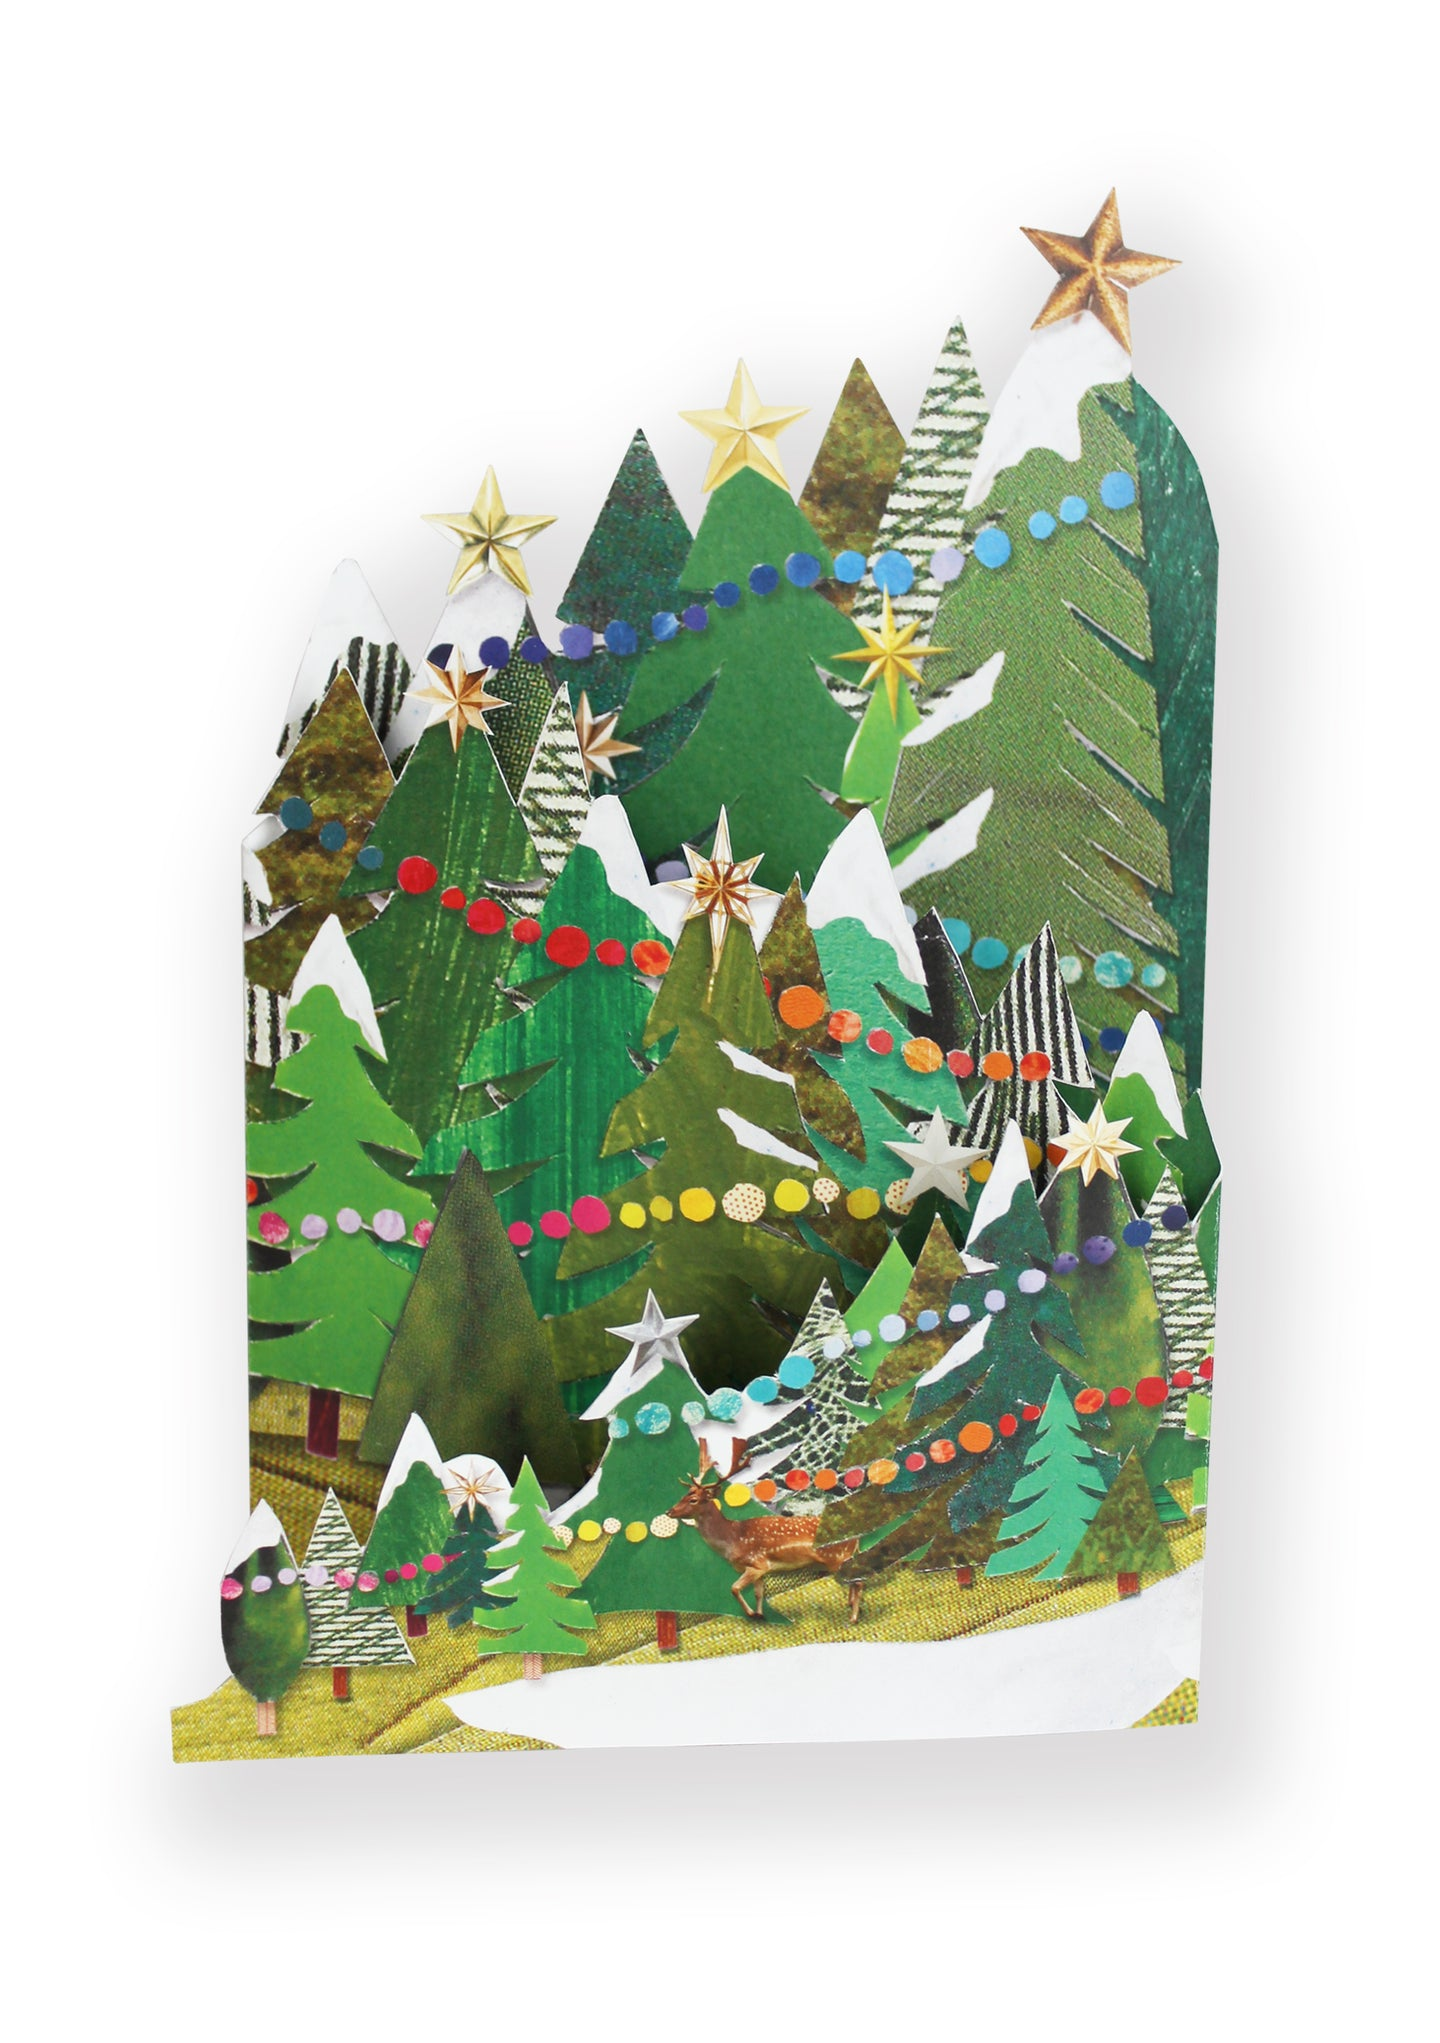 'Festive Forest' Luxury Christmas Card